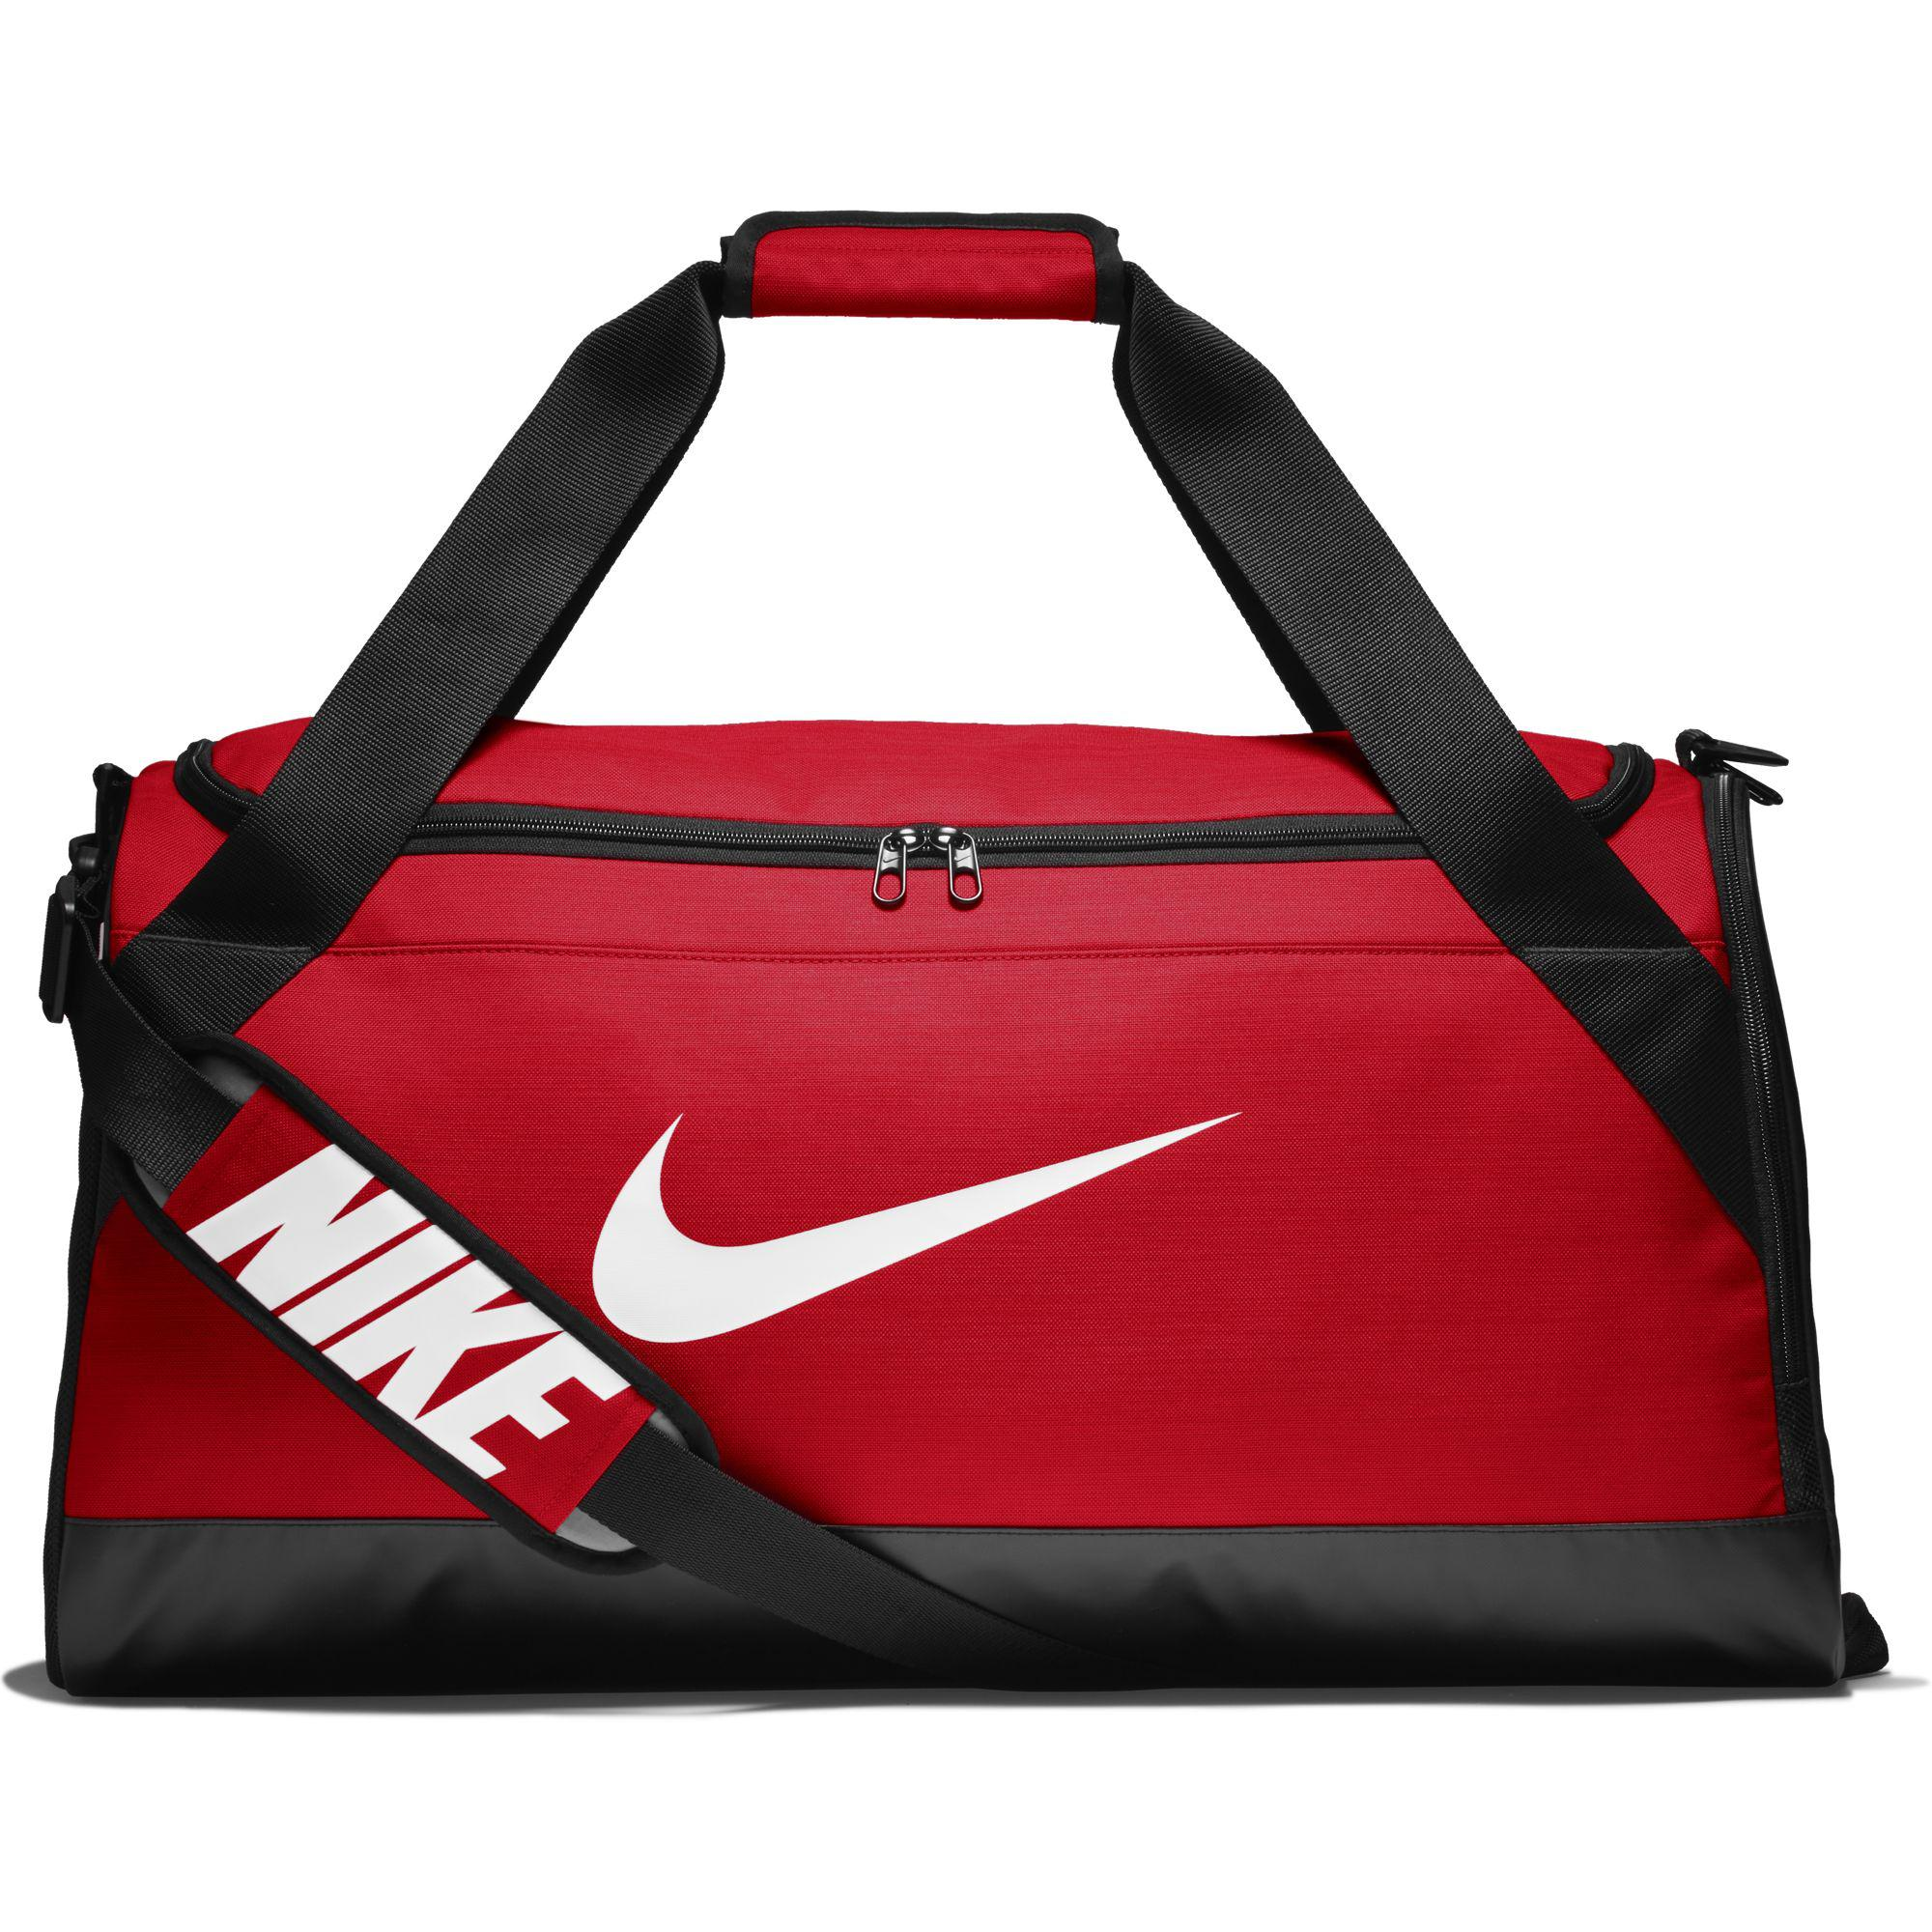 Nike Brasilia Medium Training Duffel Bag - University Red Black White -  Tennisnuts.com 7b2be67ef263b